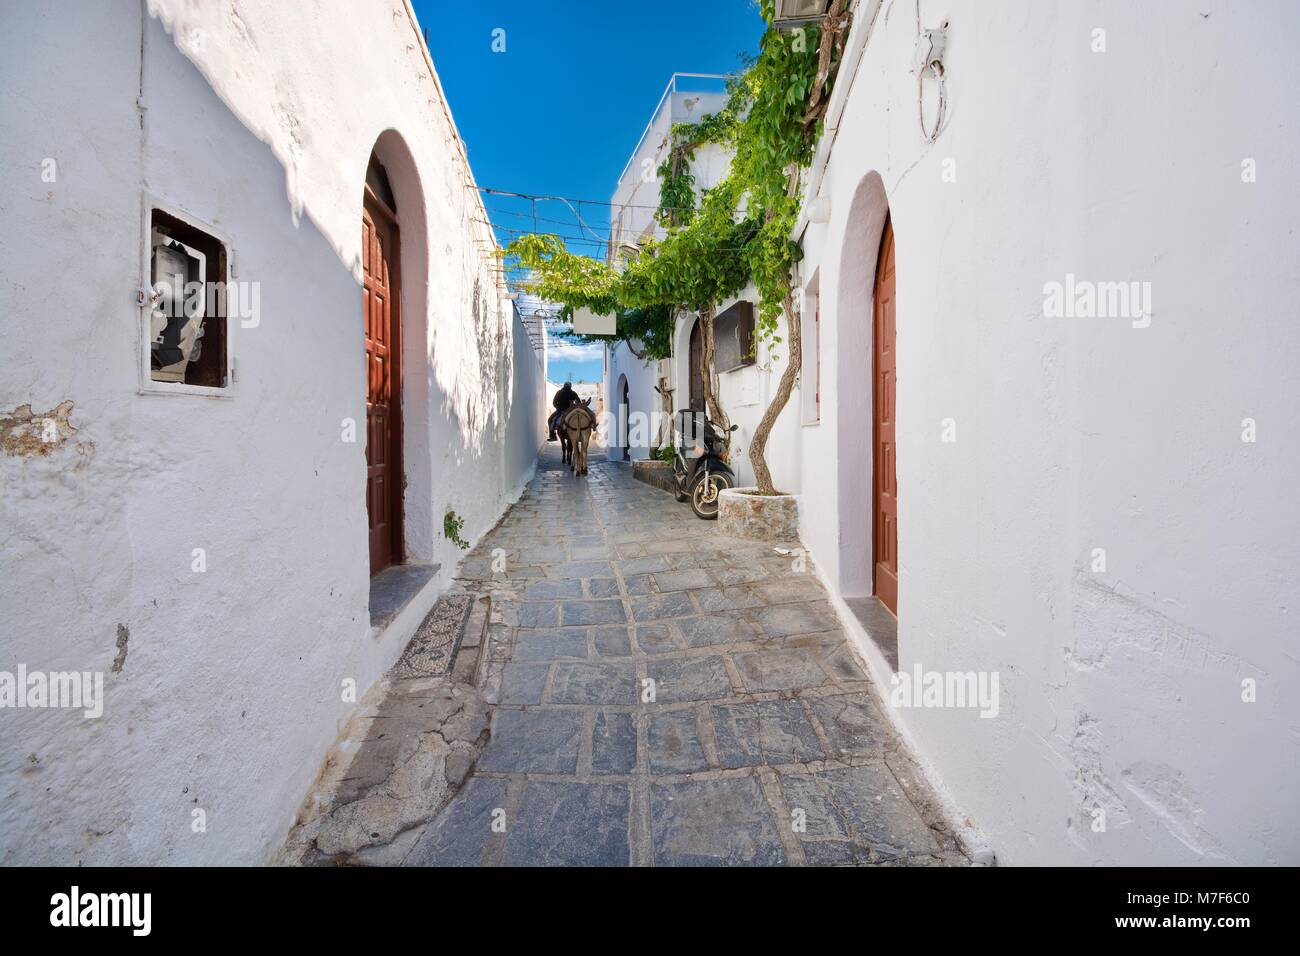 Narrow alley and traditional Greek architecture of Lindos, Rhodes Island, Greece - Stock Image